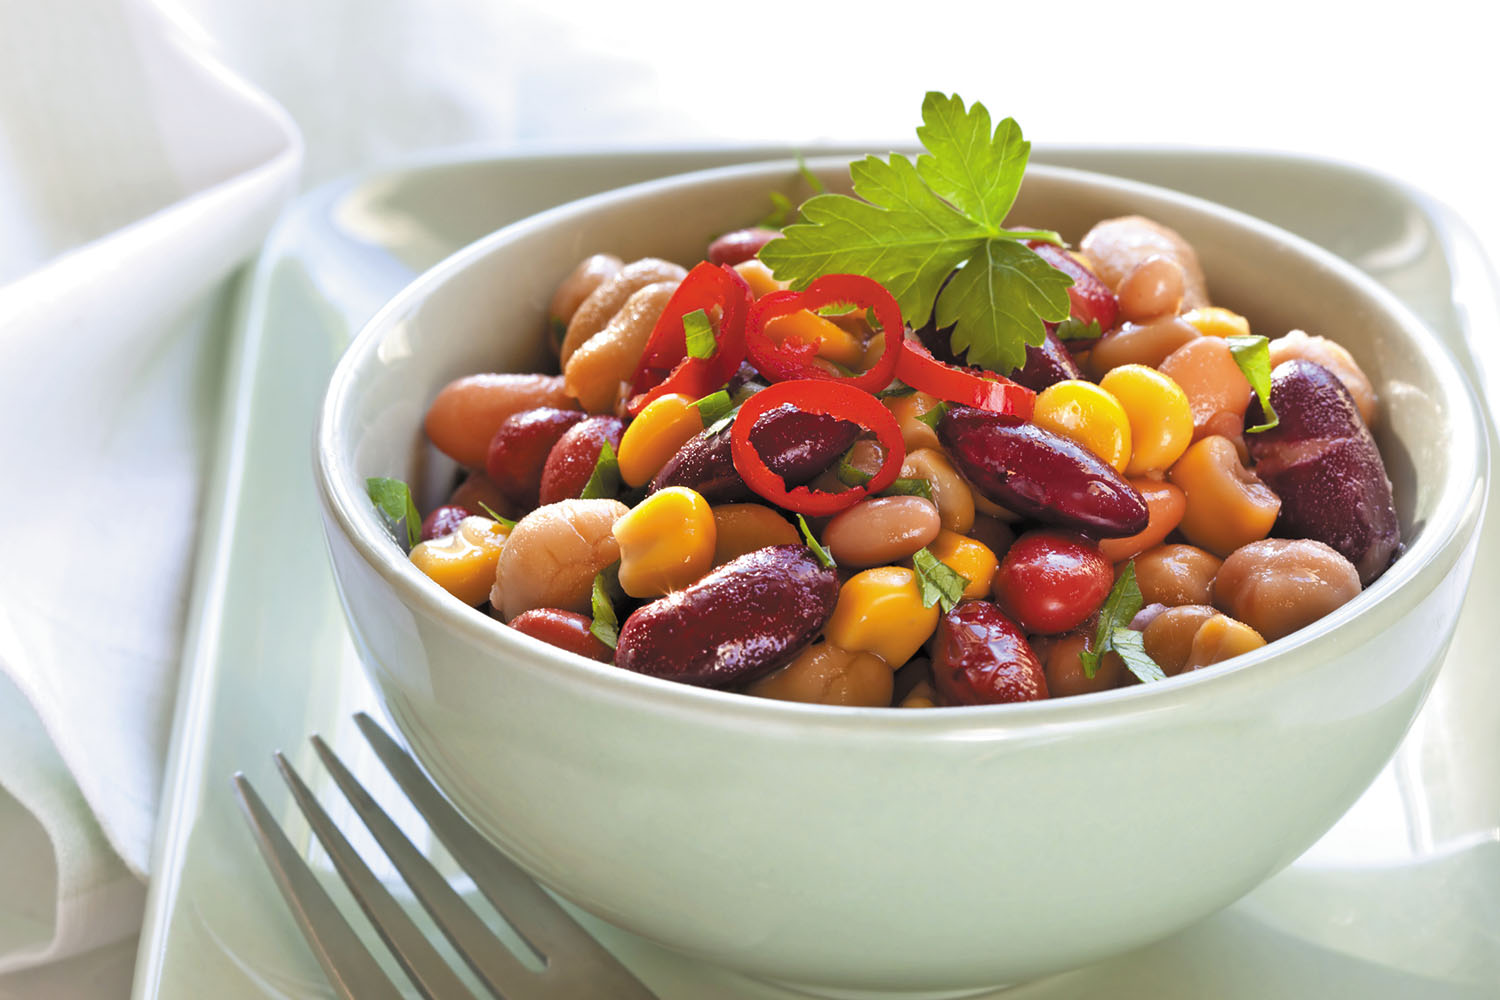 To lower heart disease risk, swap beef for beans